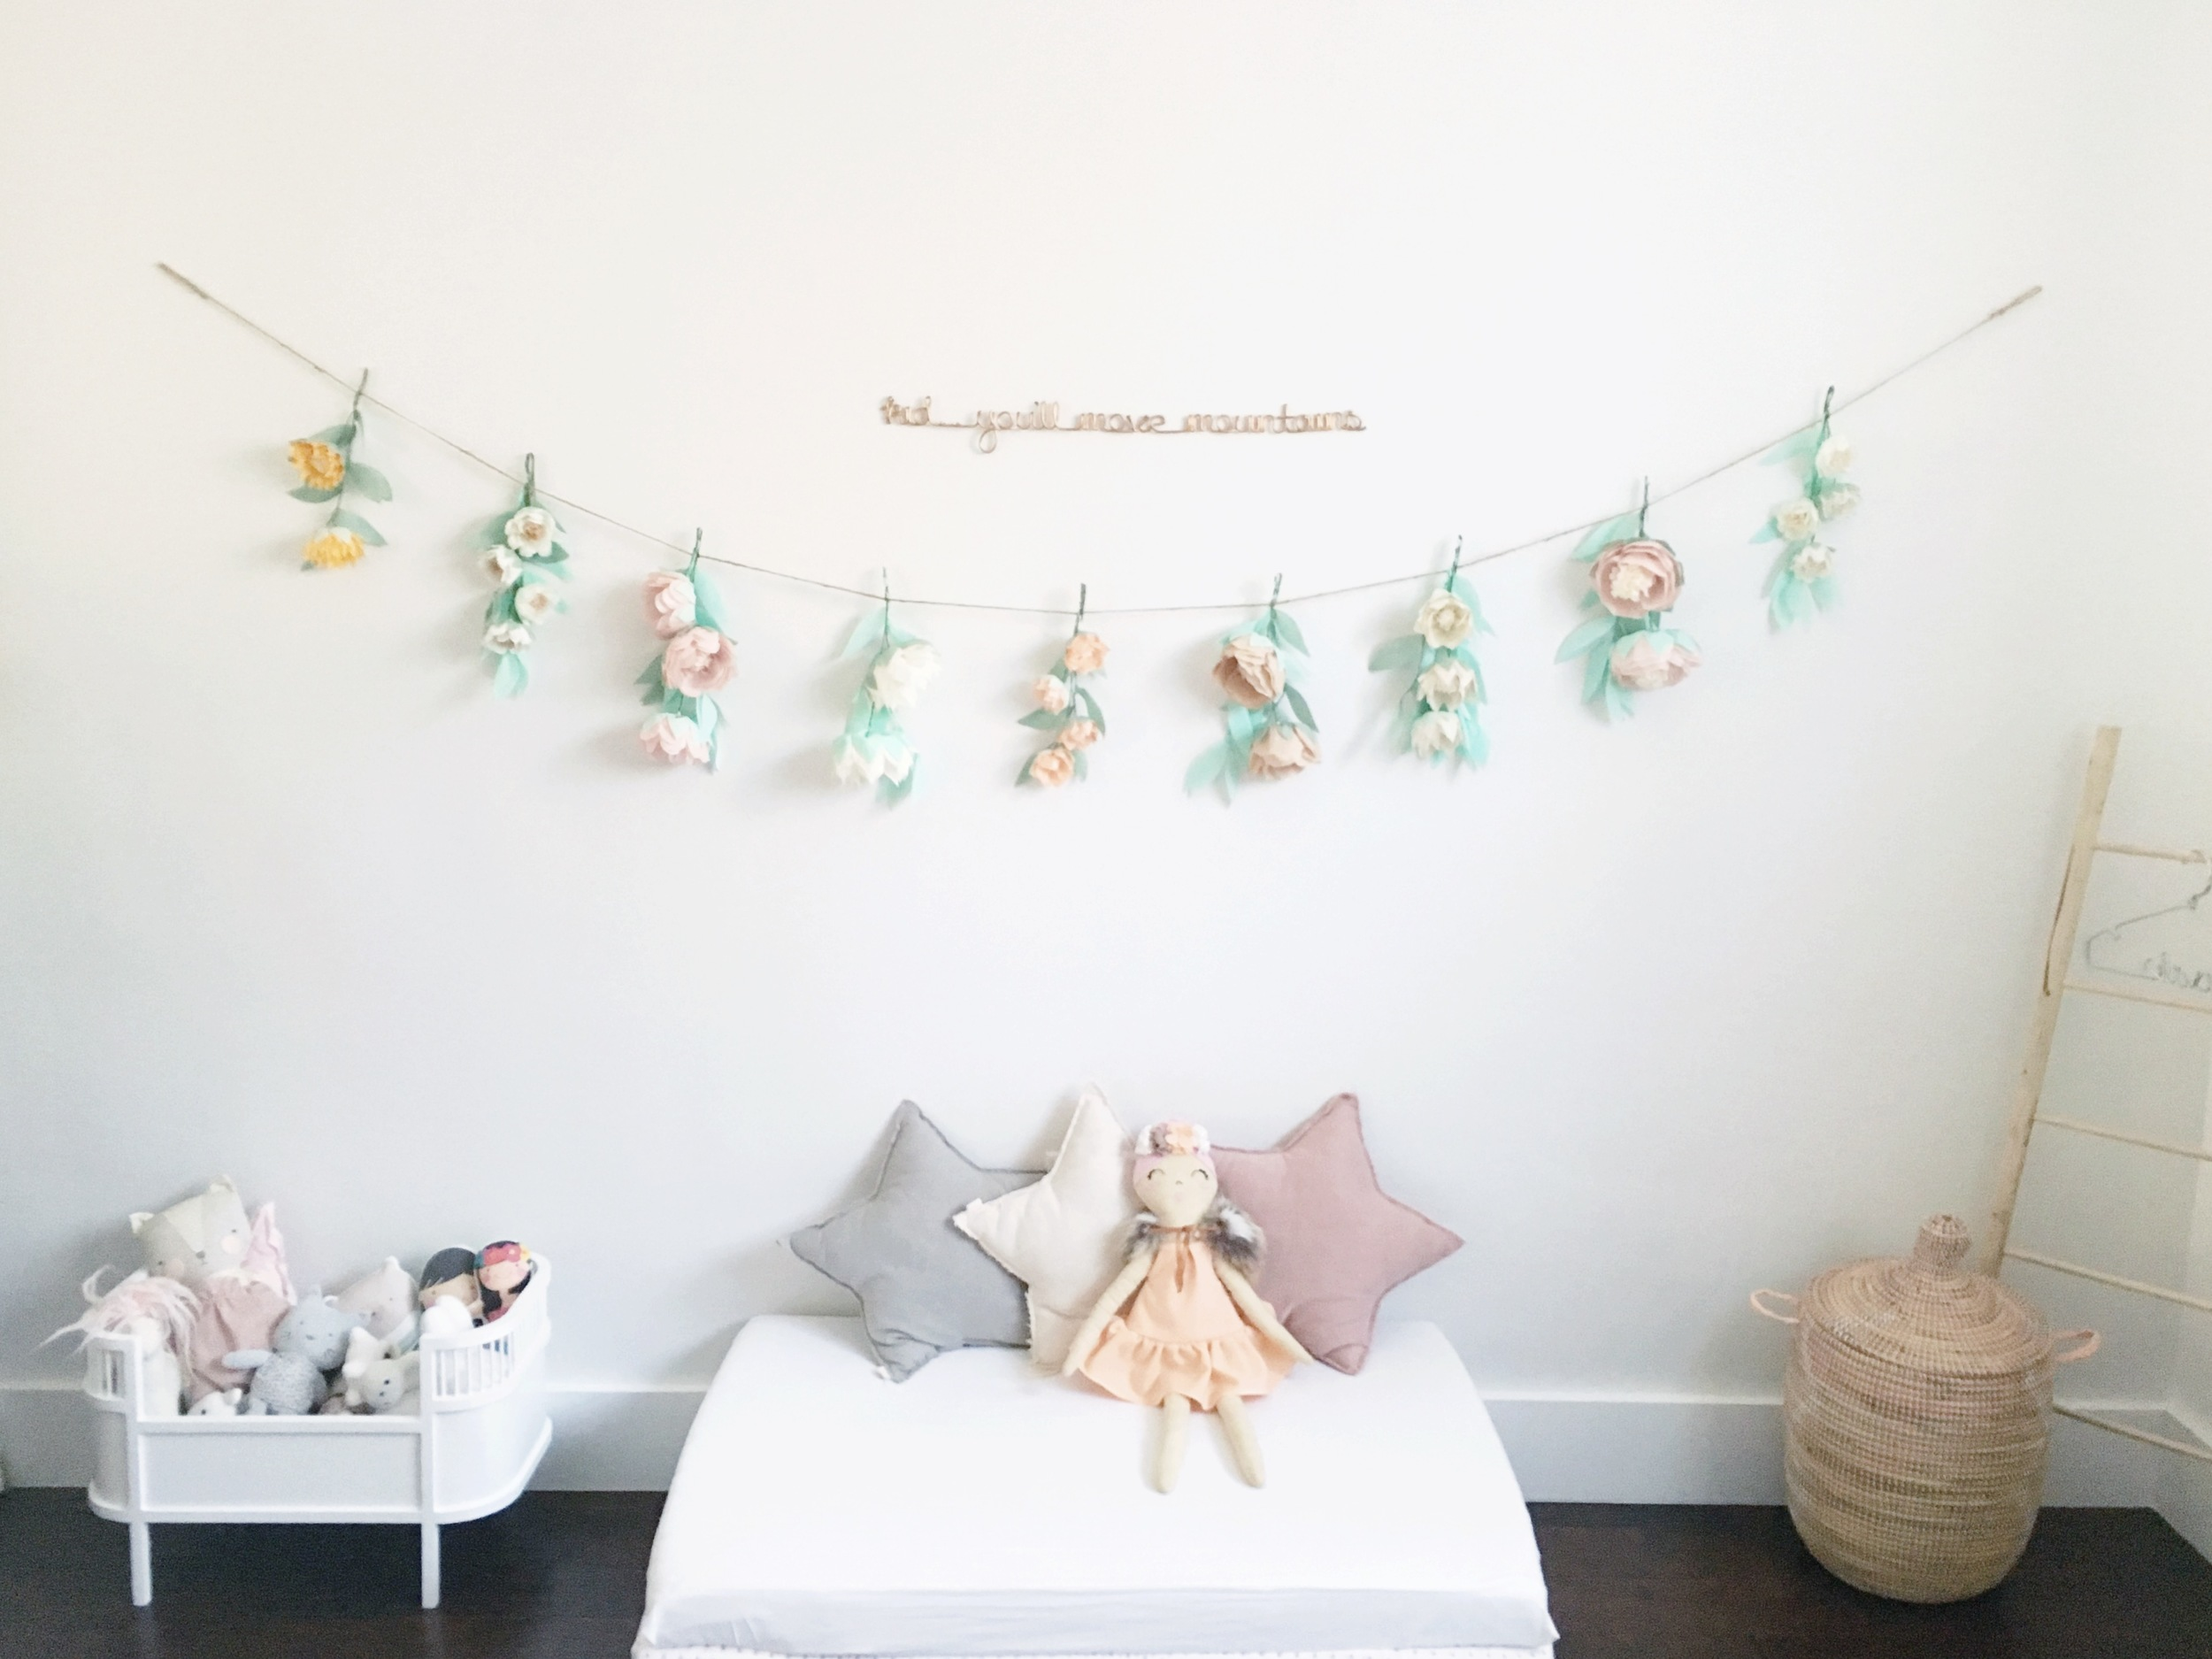 PS. It took me nearly 7 hours to make the garland in the photo.